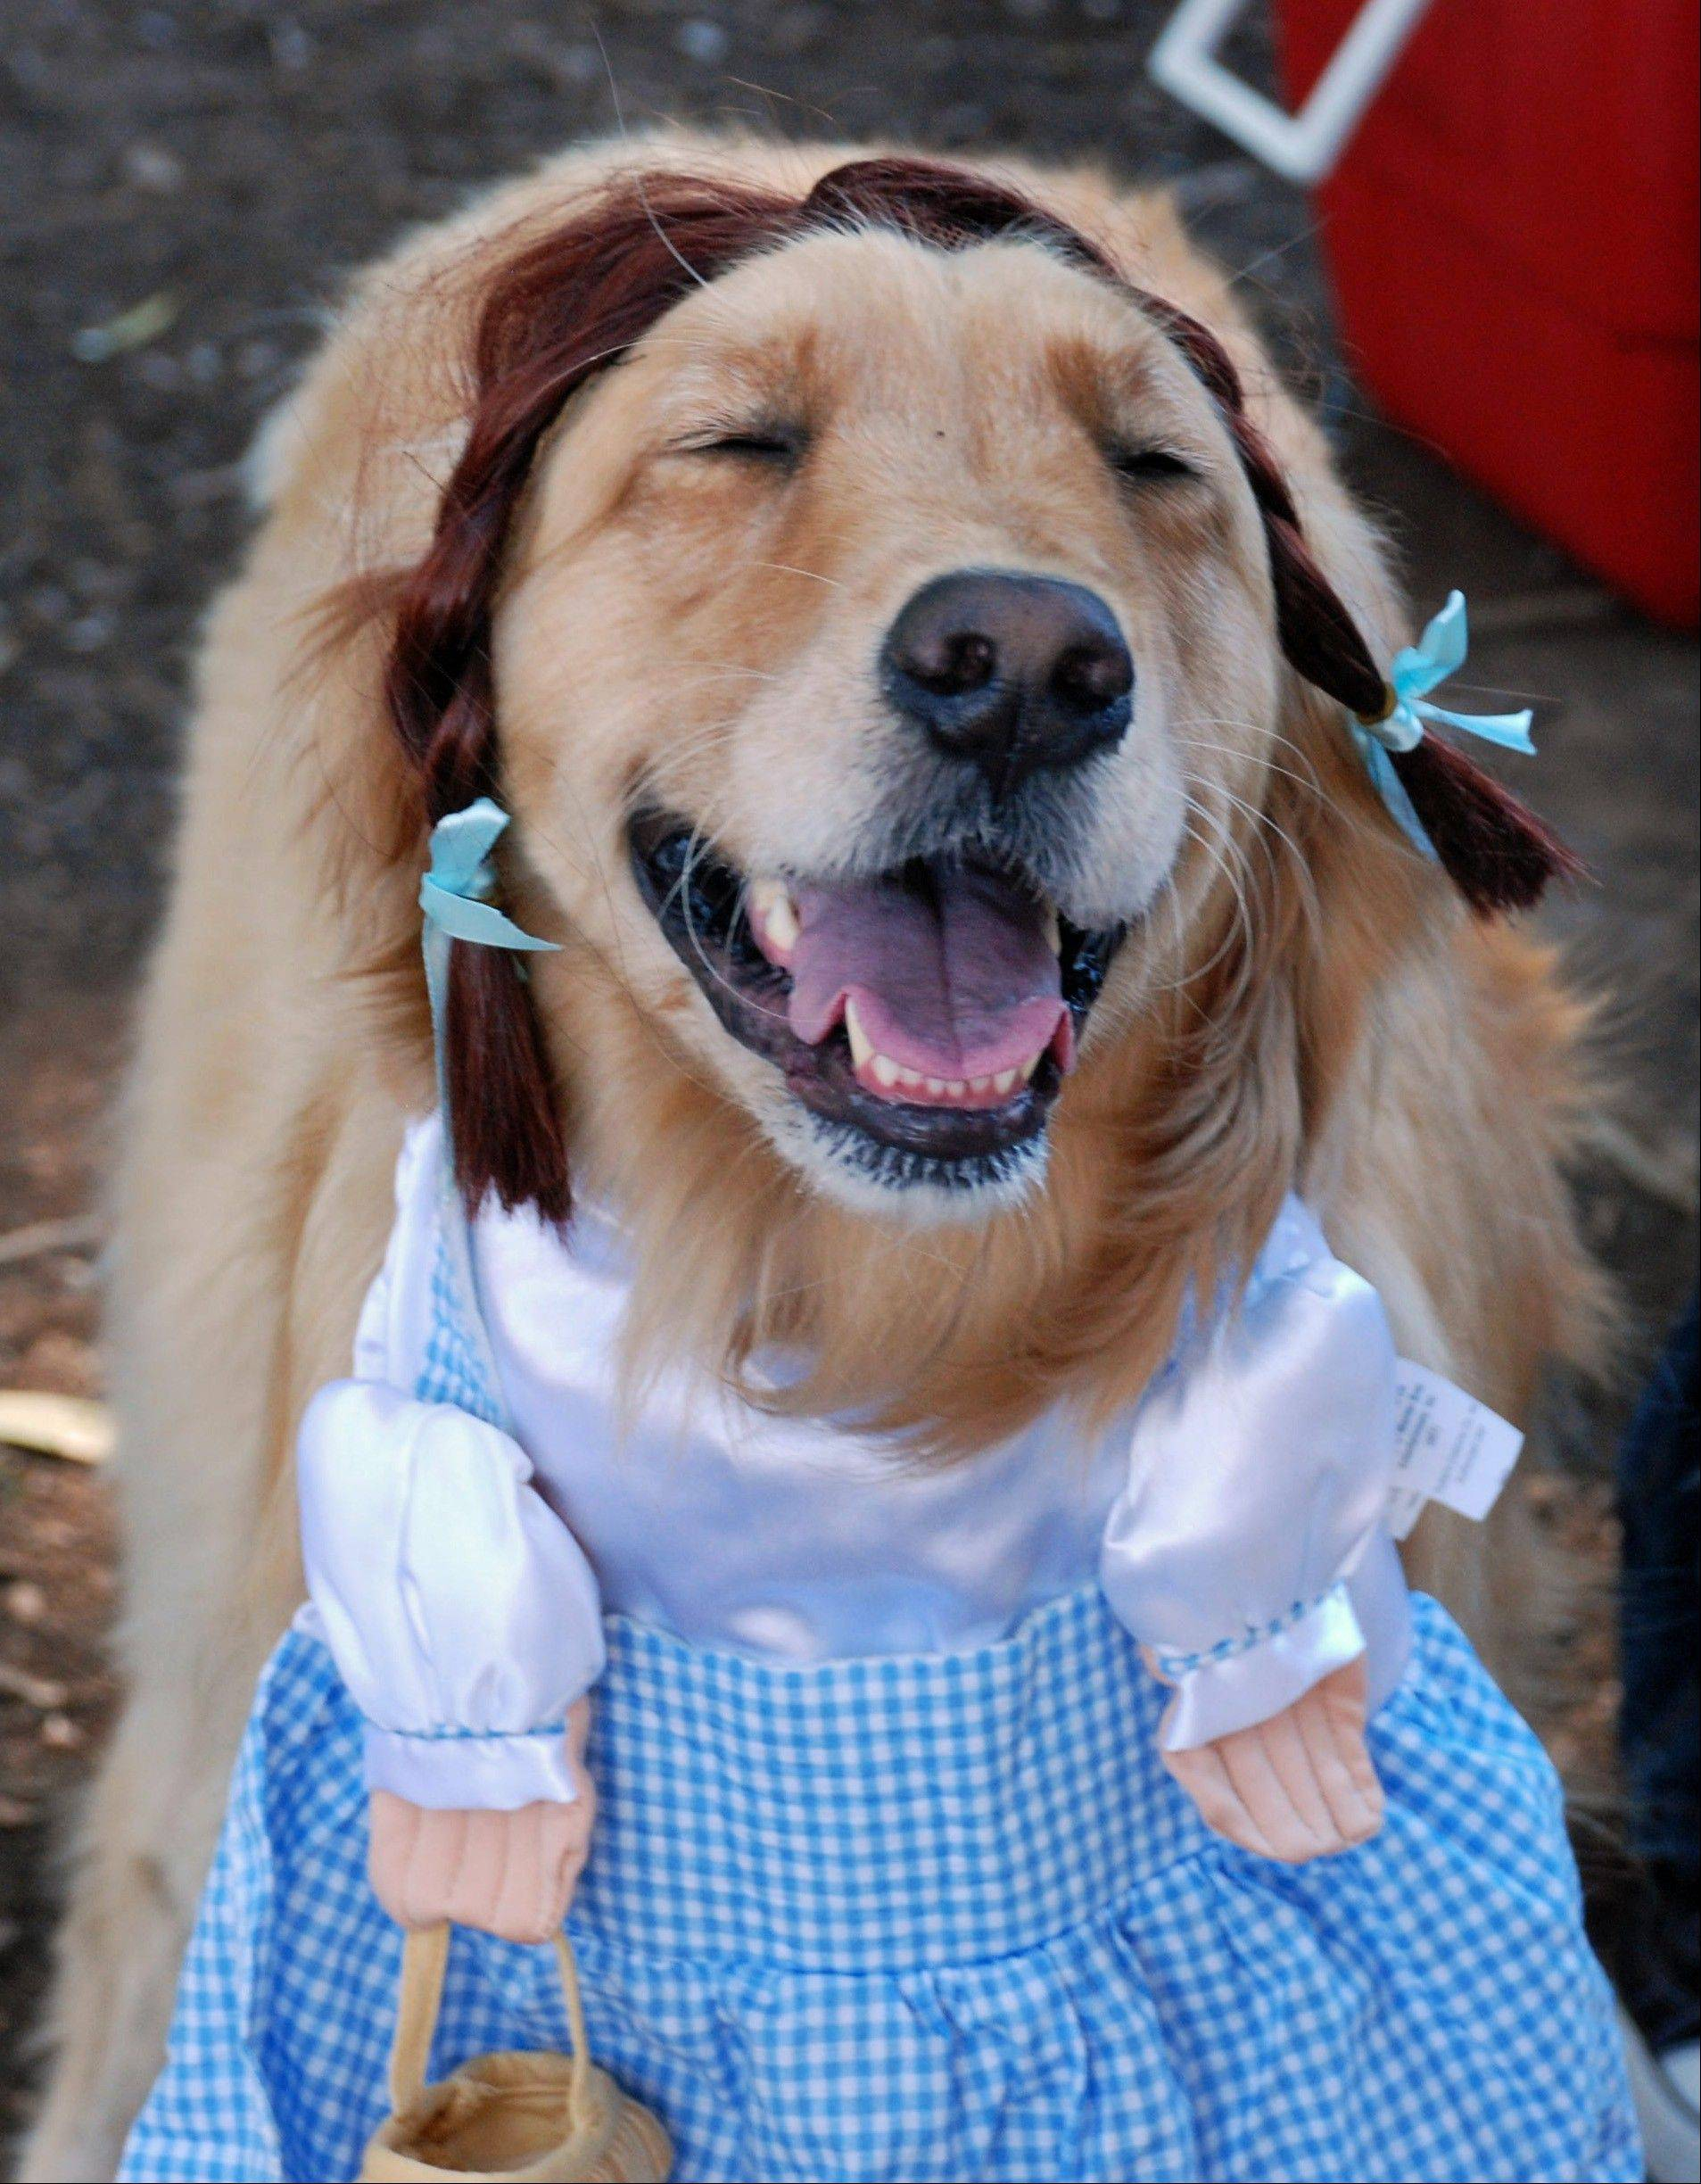 This Oct. 31, 2010 image provided by Sue Subkow, shows her golden retriever, Jill, in costume as Dorothy from The Wizard of Oz during the San Diego Golden Retriever Meetup Group's Halloween Pooch Party in San Diego, Calif. The first 45 minutes or hour of any golden retriever party involves letting the dogs run off-leash, Subkow said. That tires them out so they aren't too rambunctious during the on-leash parade, prize ceremony and lunch.